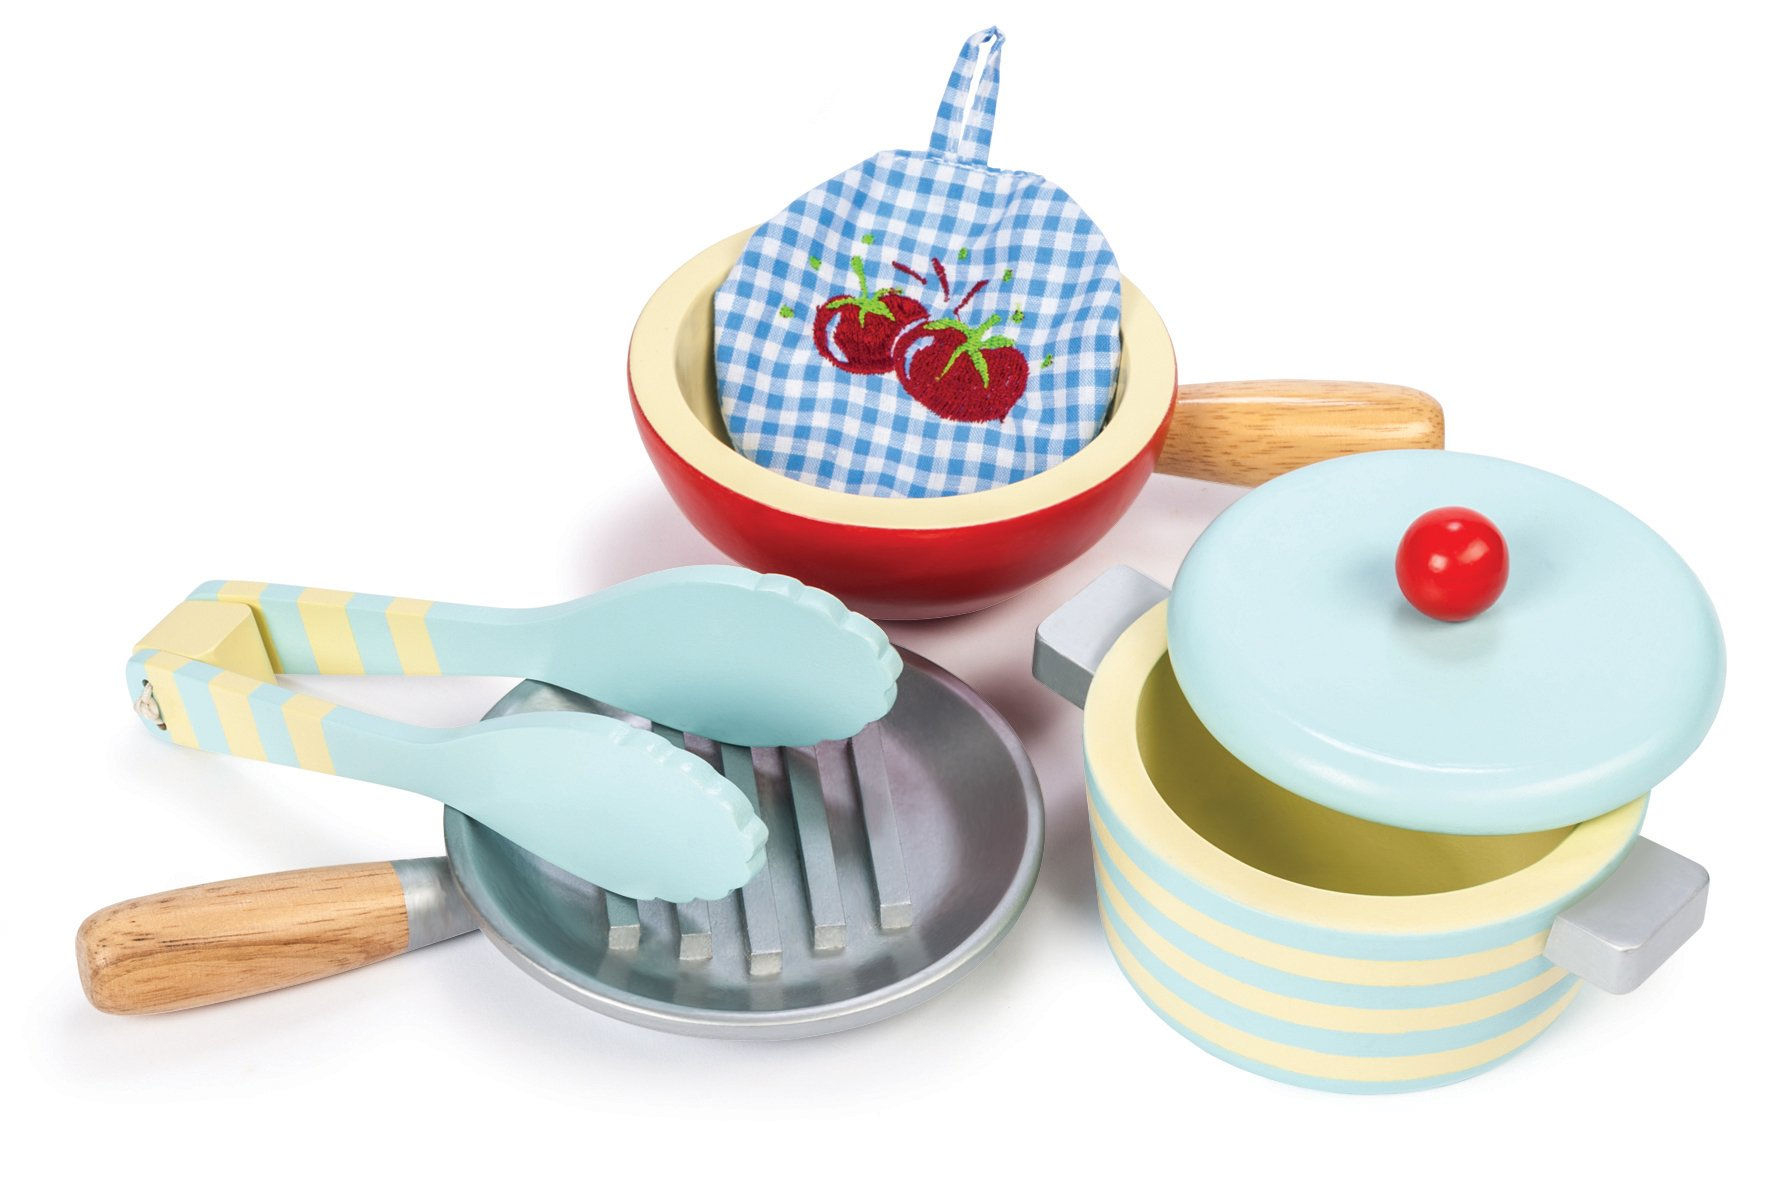 Le Toy Van Honeybake Wooden Pots & Pans Set Premium Wooden Toys for Kids Ages 3 Years & Up by Le Toy Van